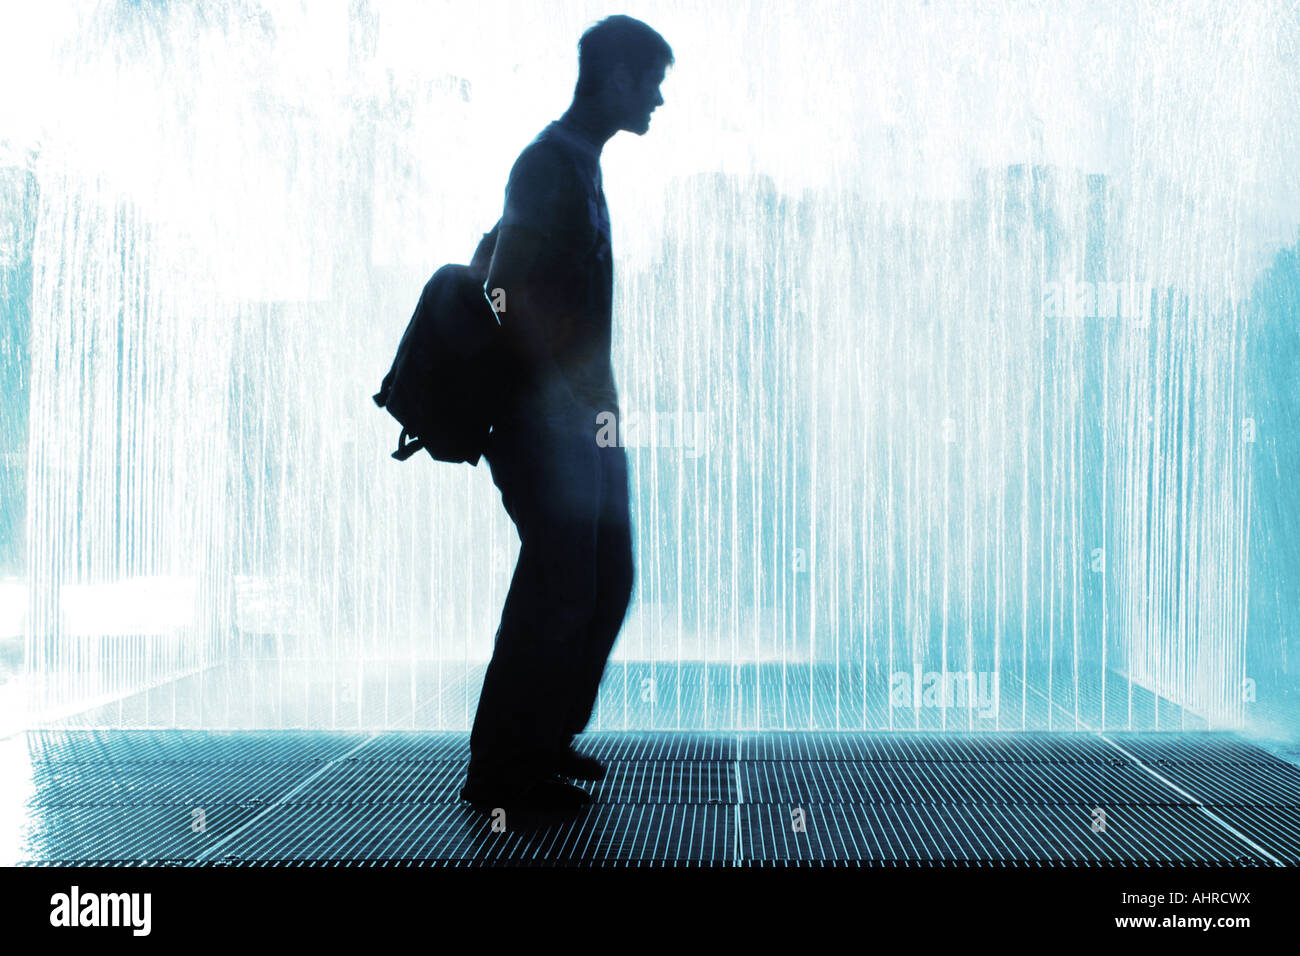 Silhouette Of A Man Standing In Water Fountain To Cool Down